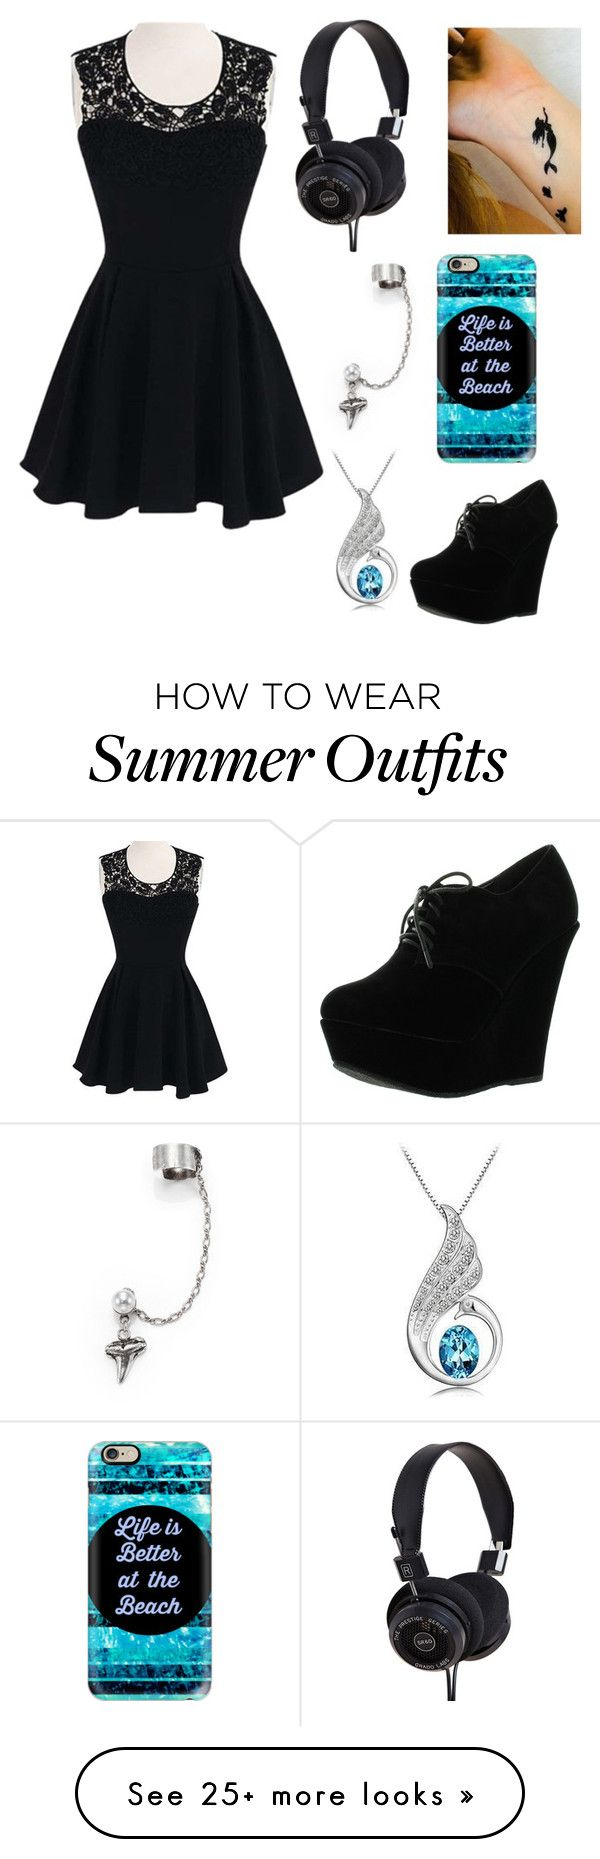 """Outfit #333"" by cheshirecatin-neverland on Polyvore featuring moda, Disney, DANNIJO, Casetify, Belec e Forever Link"